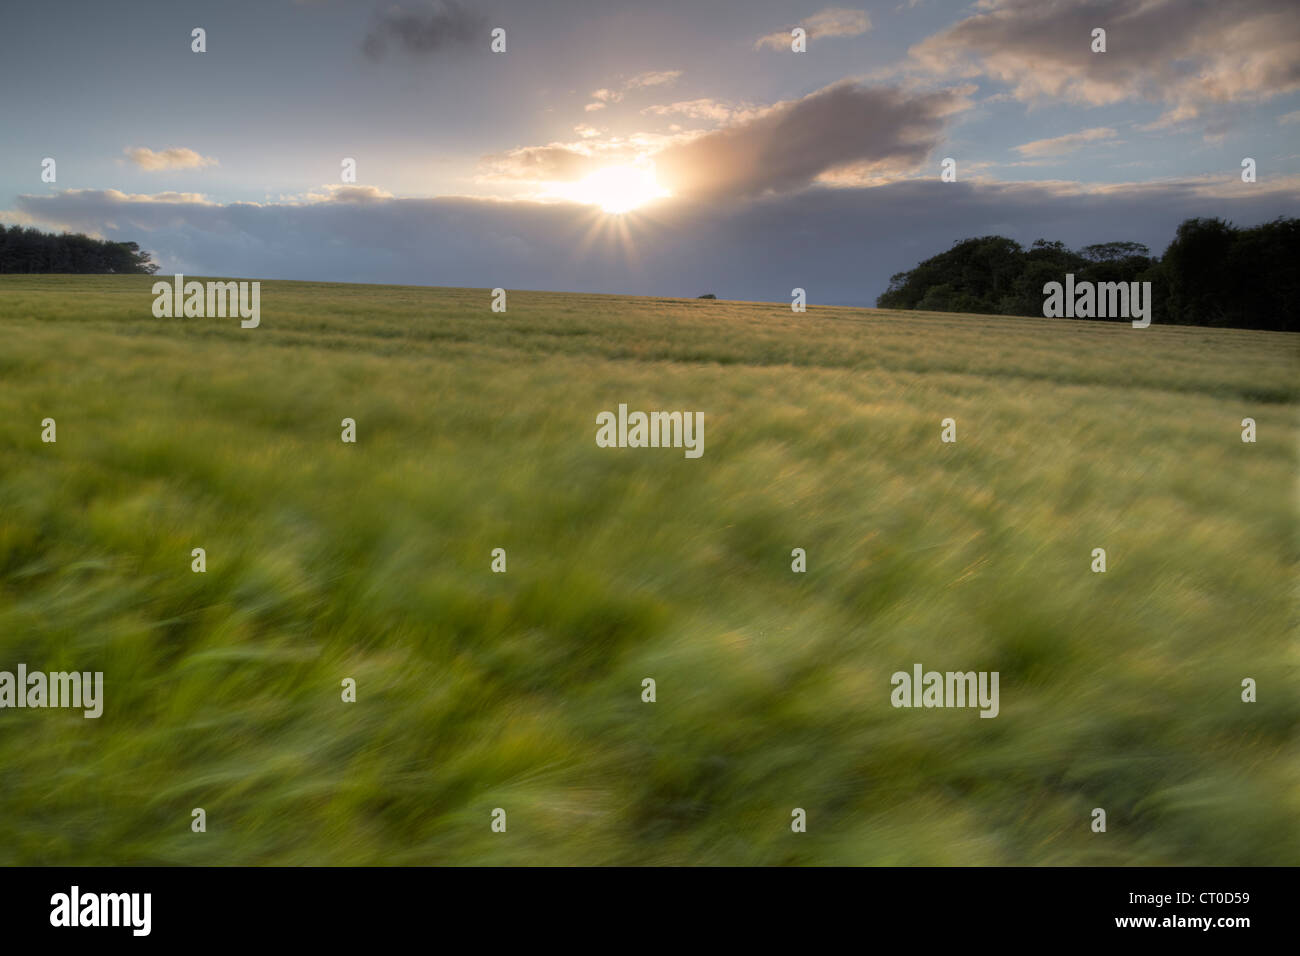 Wheat field blurred by heavy wind blowing across the landscape at sunset in the Devon countrside. Stock Photo